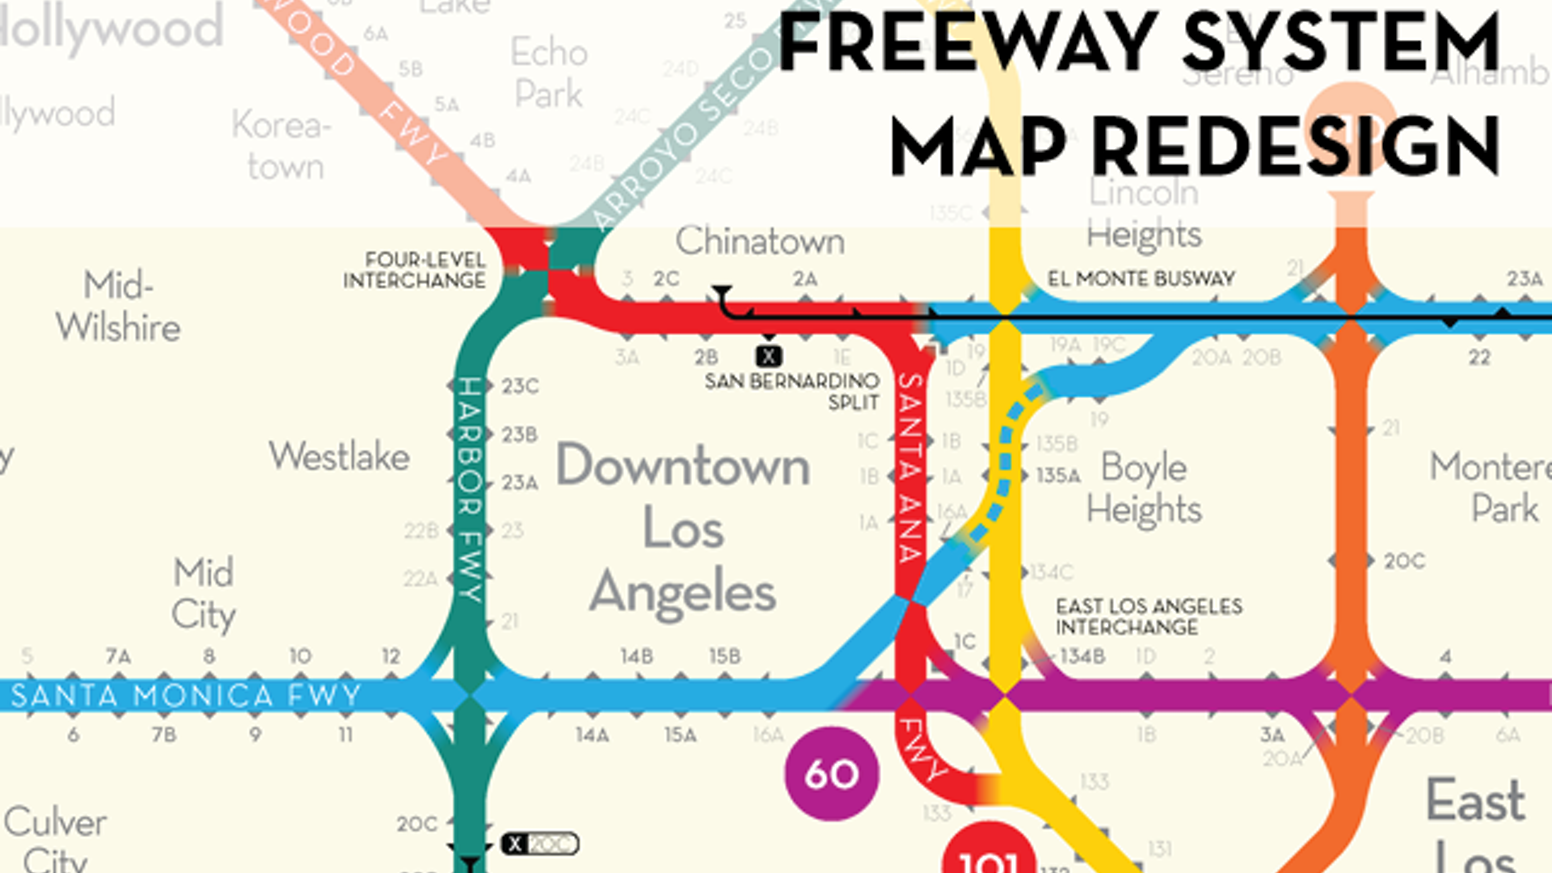 Los Angeles Freeway Map, Redesigned by Peter Dunn — Kickstarter on map inland empire 215, map of california cities and freeways, ventura freeway, map of california highways and freeways, map of california showing cities, map of southern ca, map of california with freeways, l.a. freeway, map of california airports near los angeles, map of southern idaho college campus, map of so california freeways, map of university of california campuses, map southern travel california, map of private universities in california, san bernardino freeway, map of hwy 20 california, map of california with cities and highways, golden state freeway, orange county ca traffic freeway, map southern california attractions,